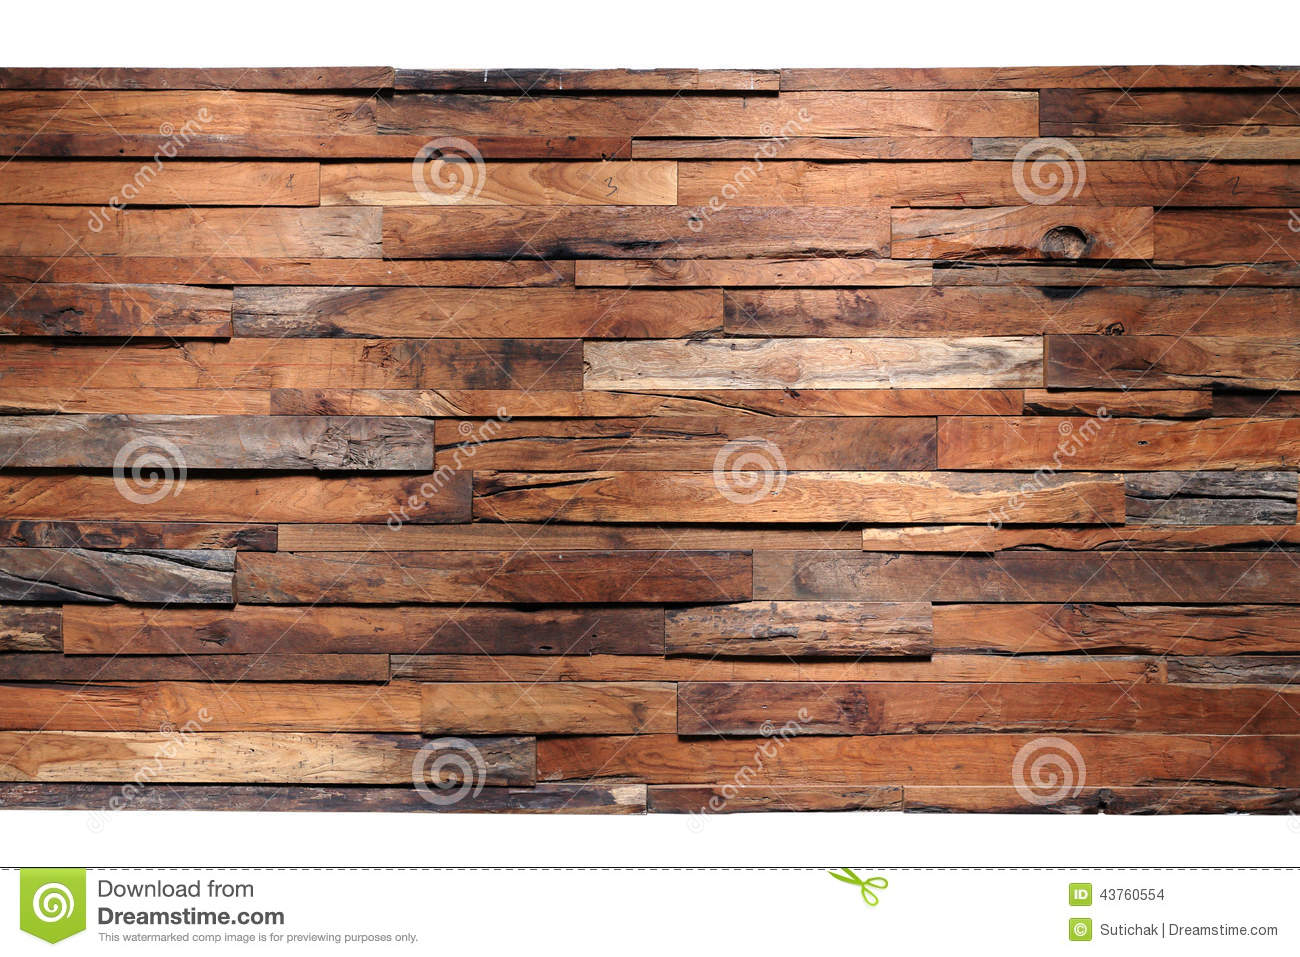 Timber wood wall texture